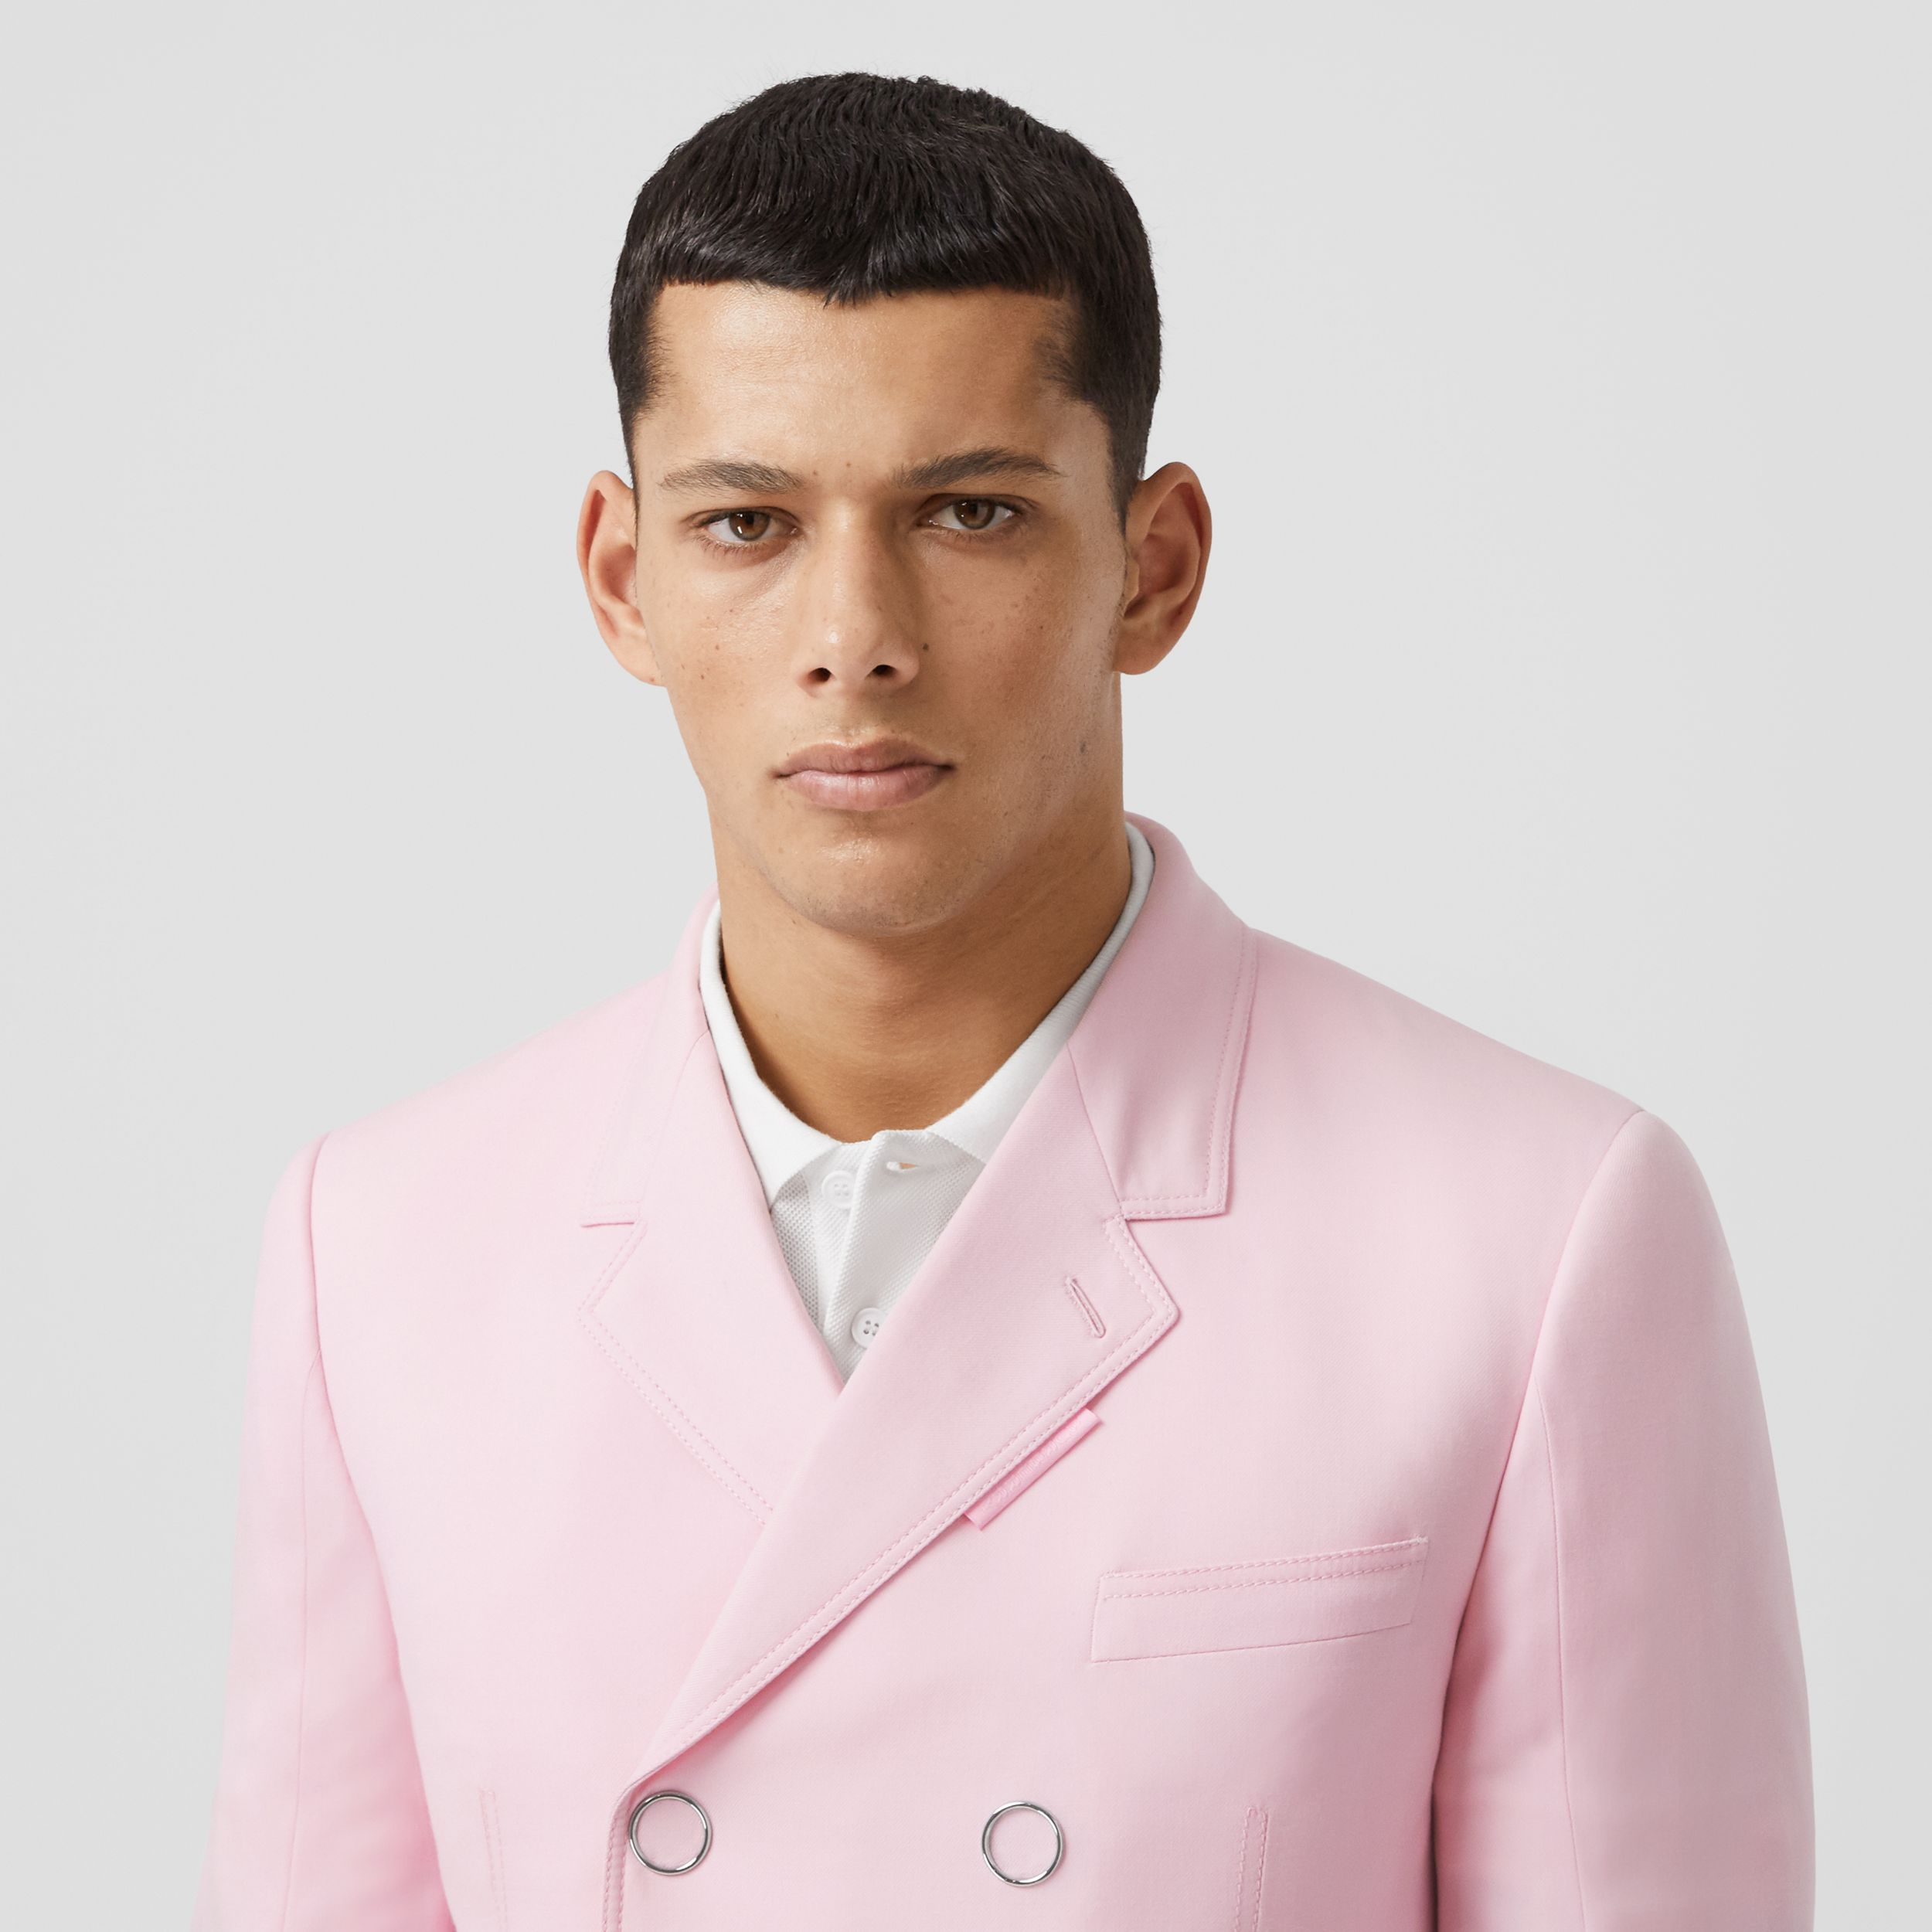 Slim Fit Press-stud Tumbled Wool Tailored Jacket in Candy Pink - Men | Burberry - 2